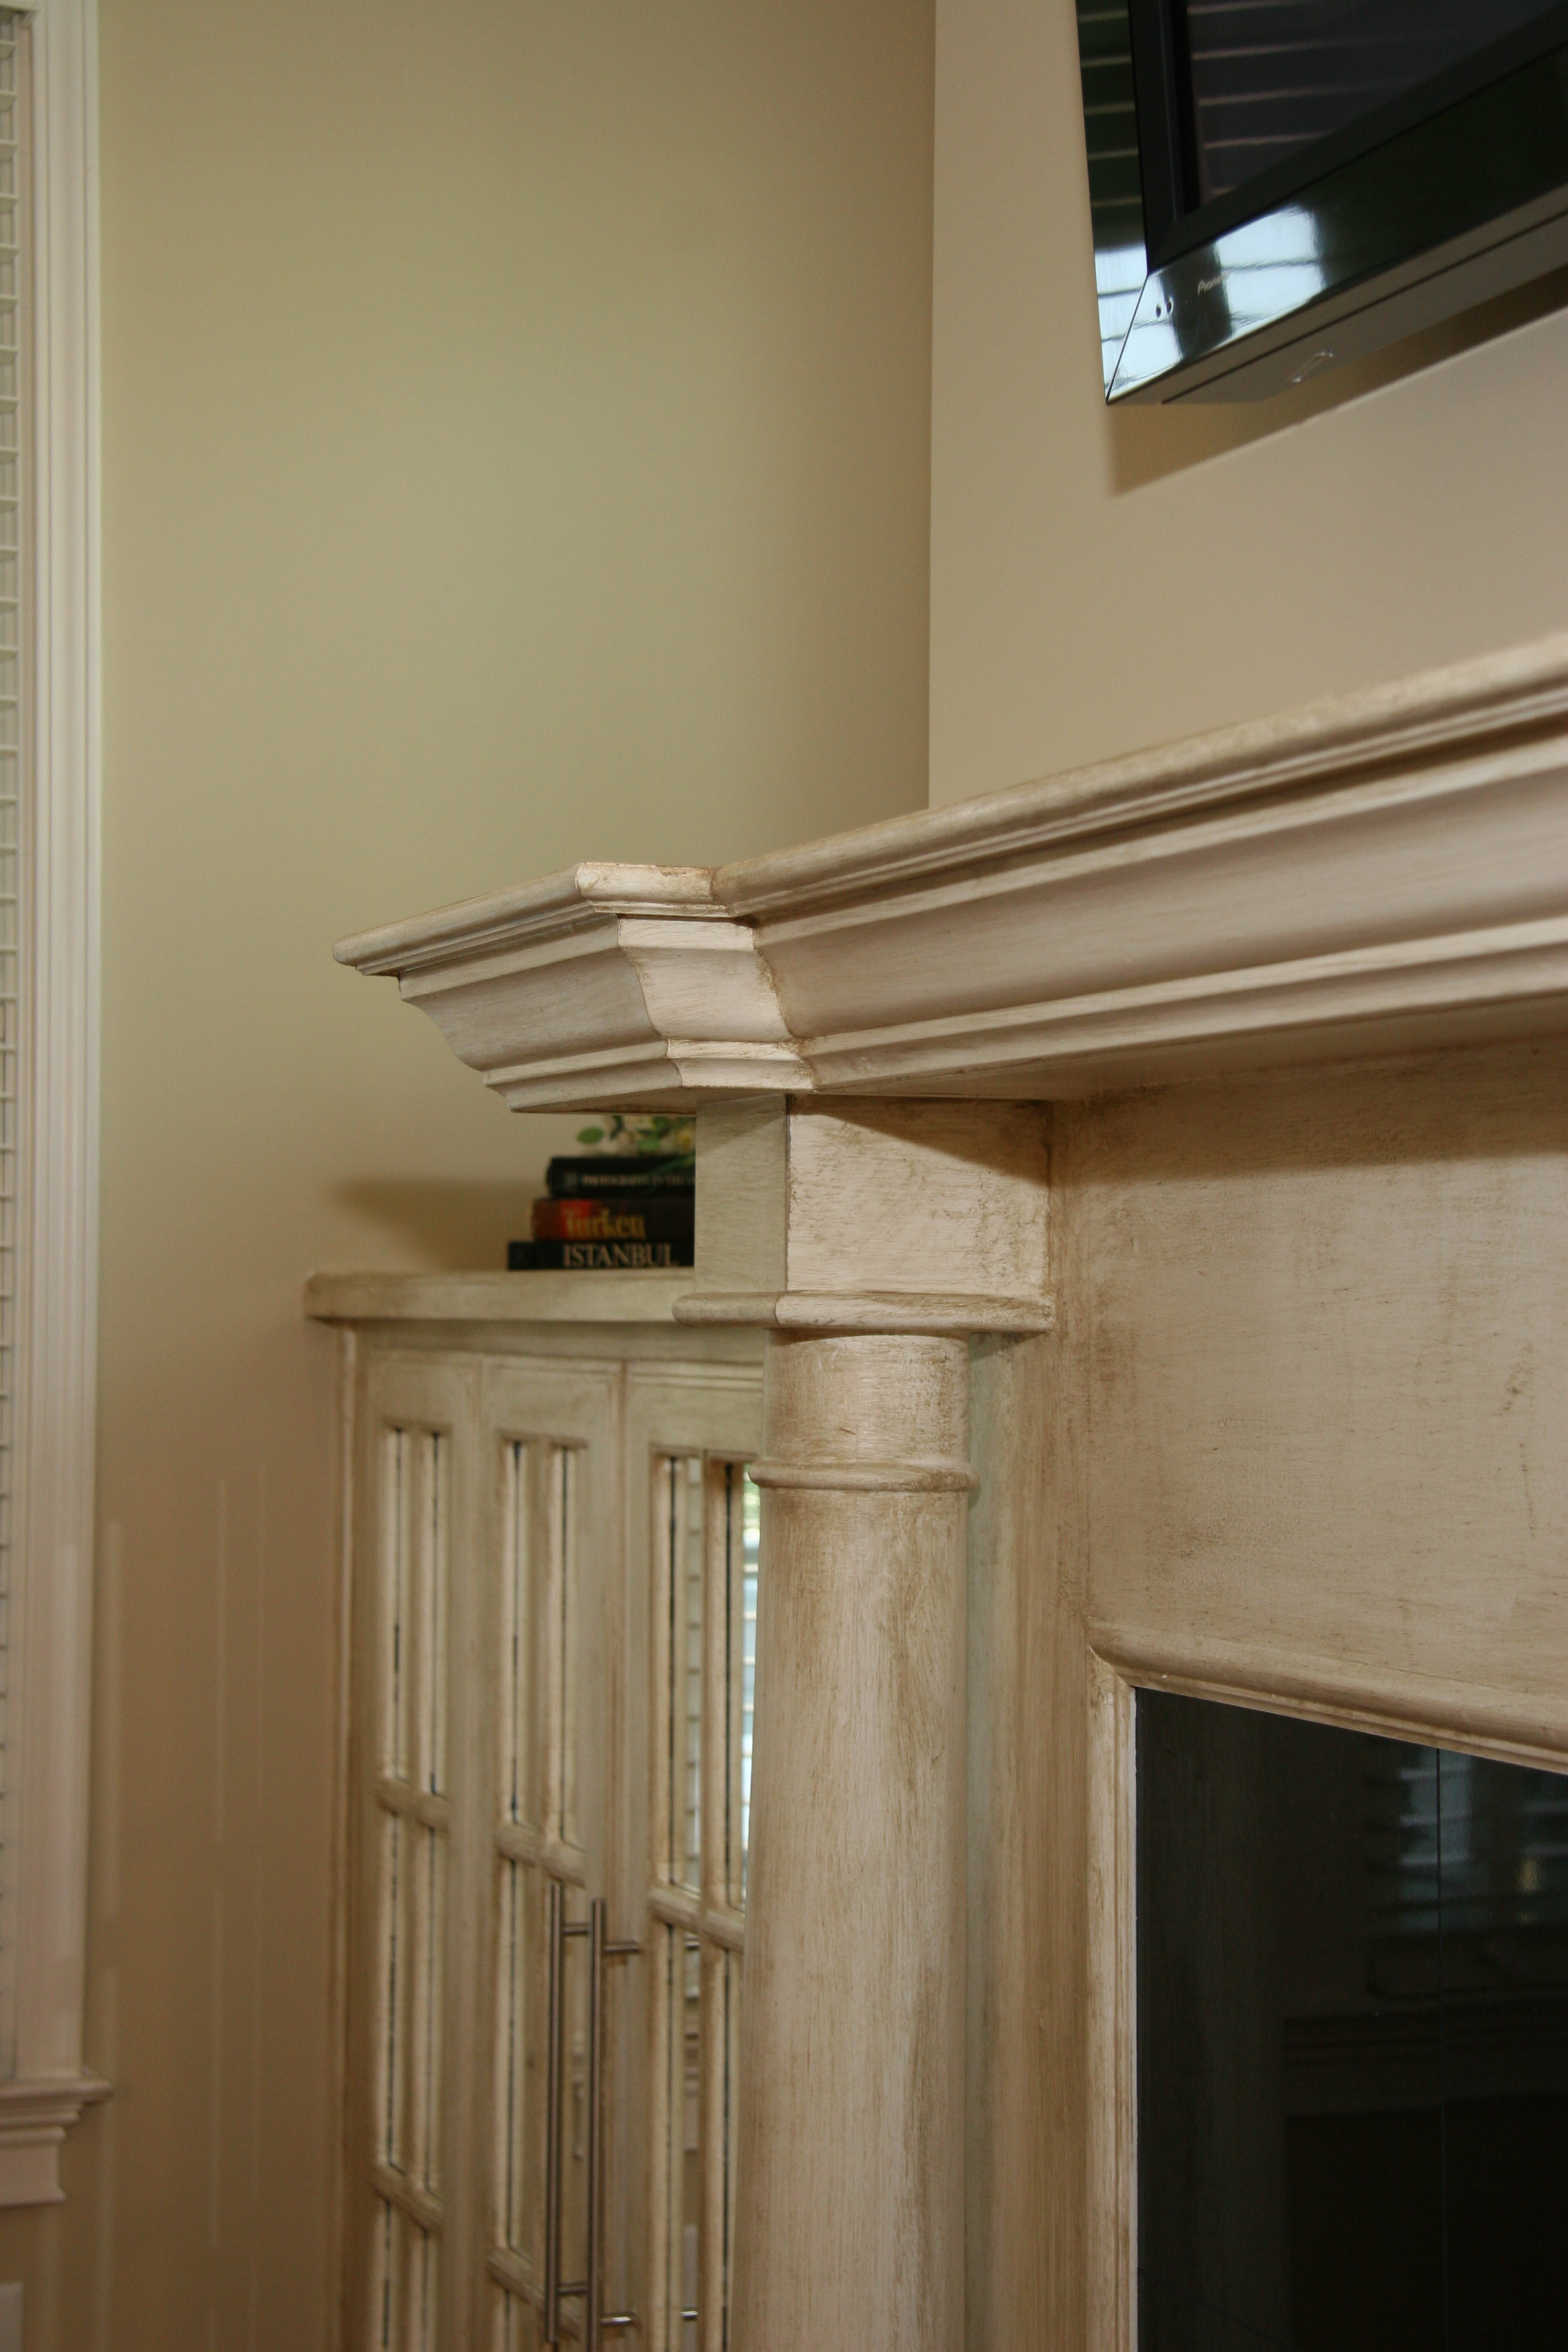 More Details of firplace Mantel and Side Cabinets